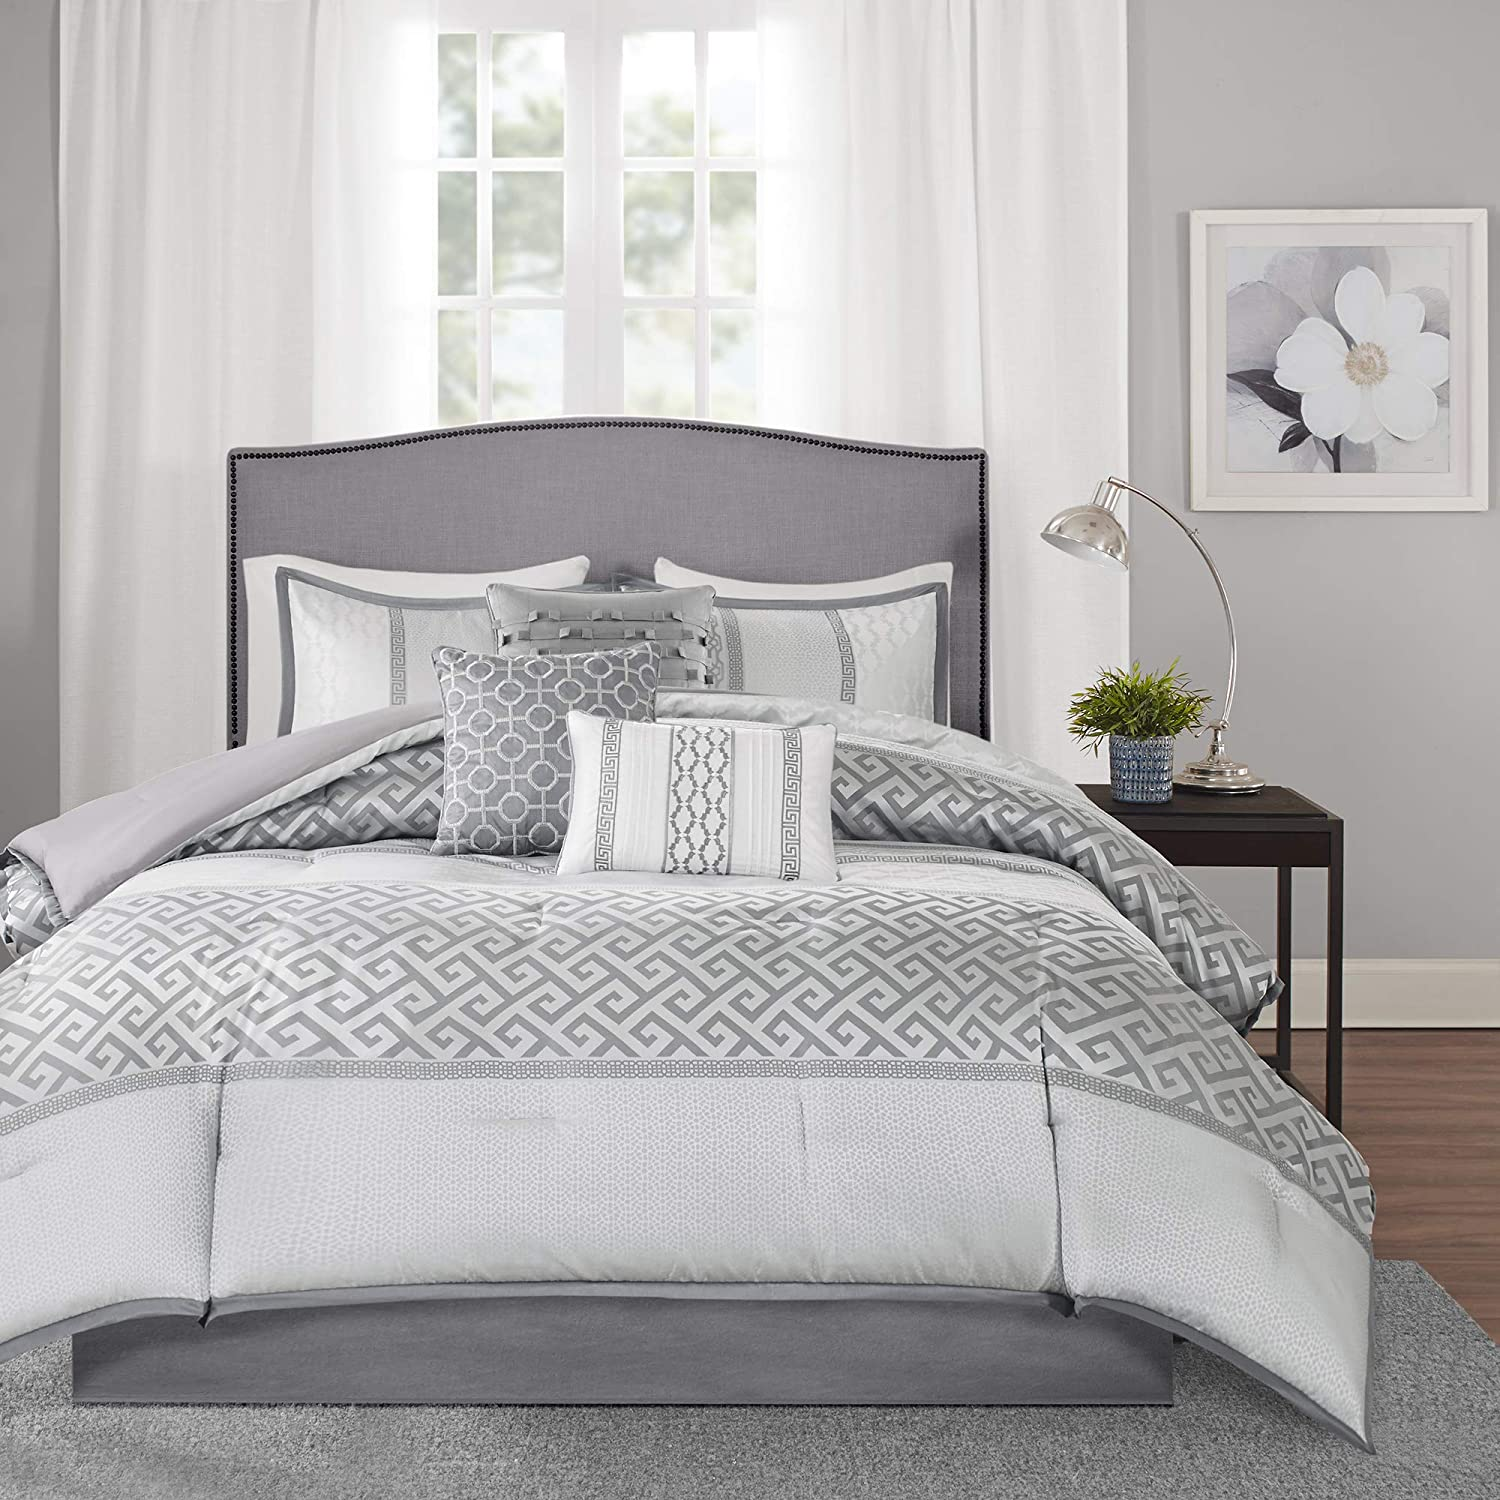 Amazon.com: Madison Park Luxury Comforter Set Traditional Jacquard